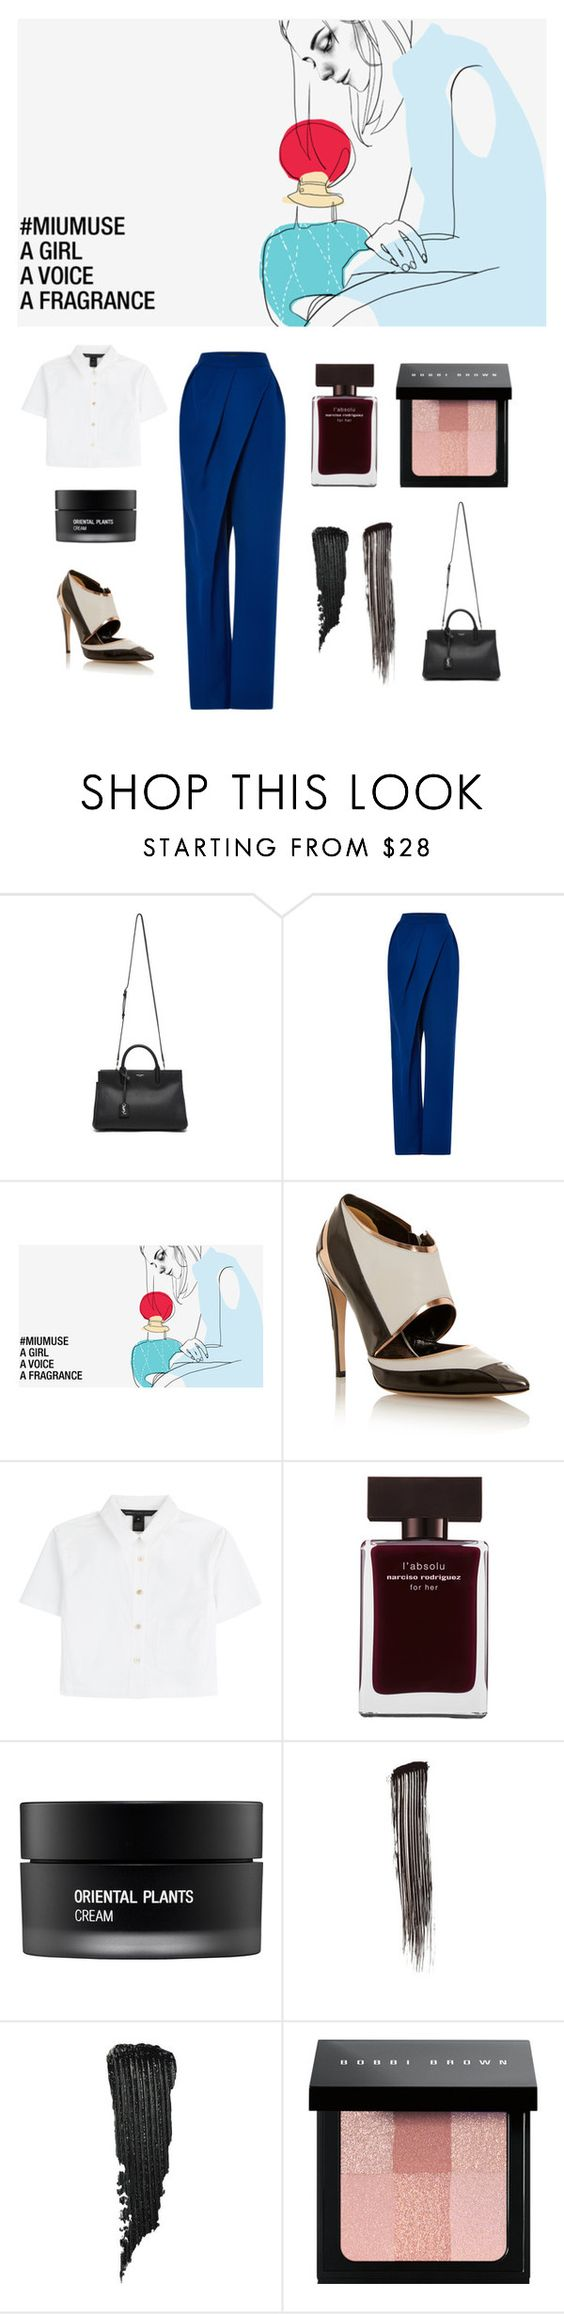 """""""new muse"""" by wednesday-williams ❤ liked on Polyvore featuring Yves Saint Laurent, Vika Gazinskaya, Prabal Gurung, Marc by Marc Jacobs, Narciso Rodriguez, Koh Gen Do, Chanel, Kevyn Aucoin and Bobbi Brown Cosmetics"""